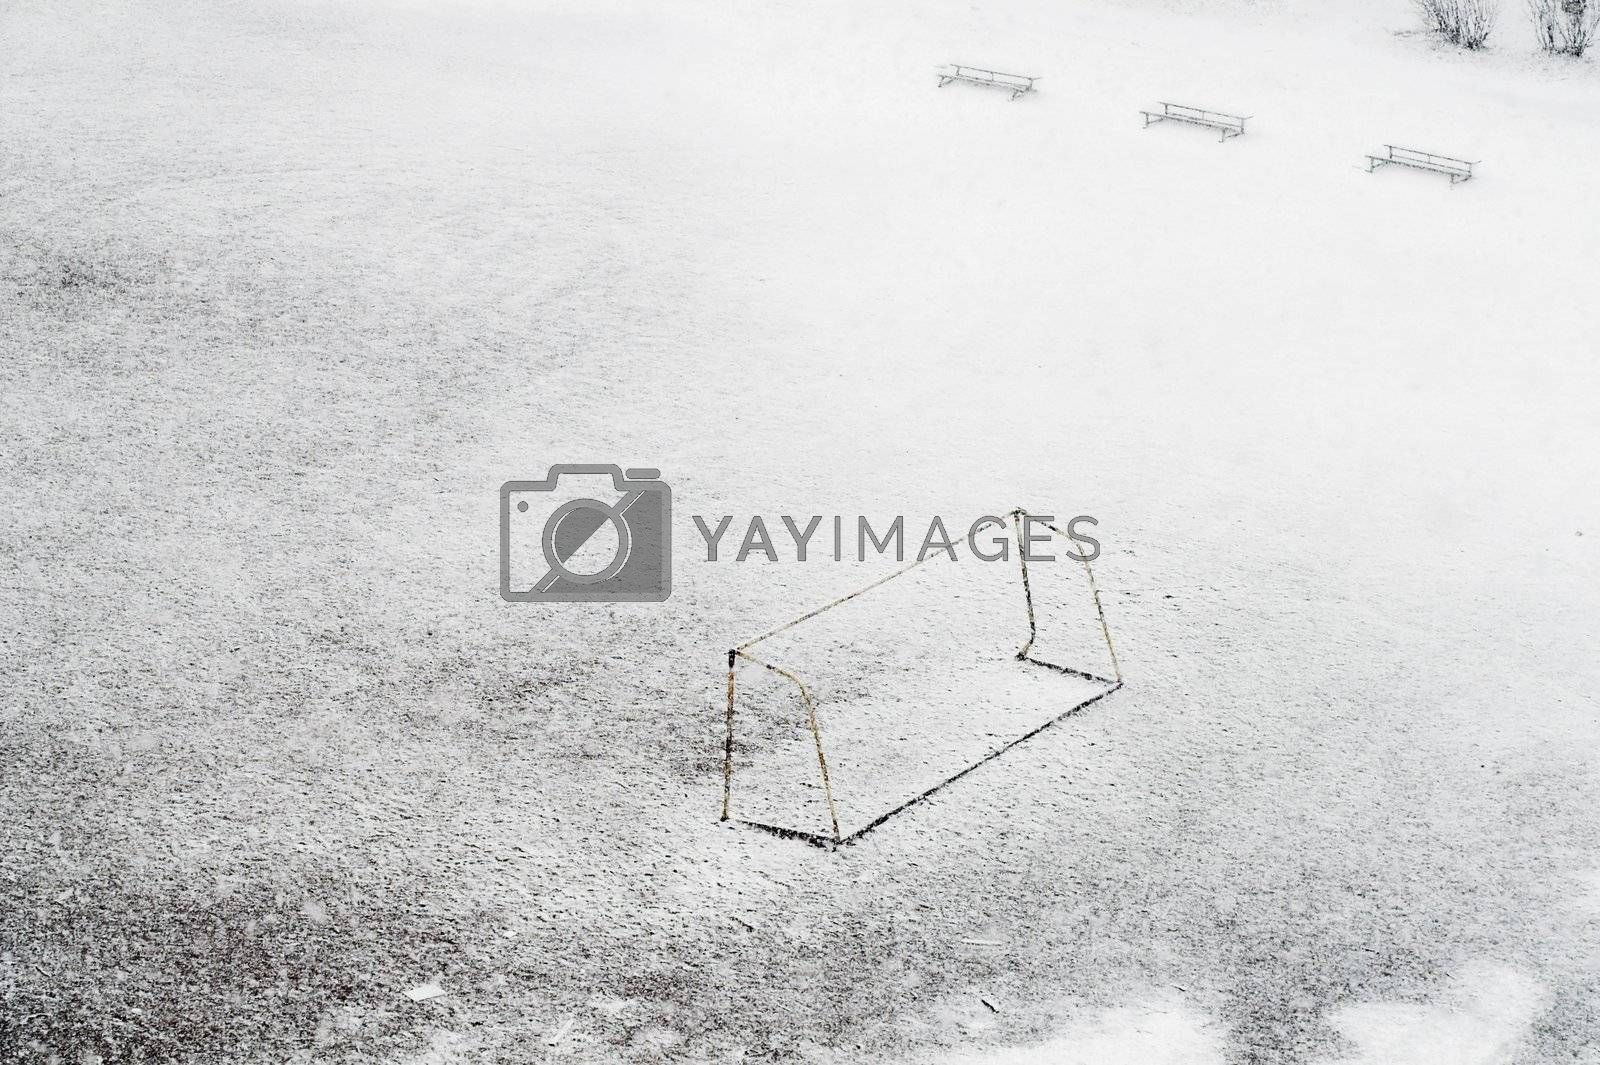 School football ground while snowfalling